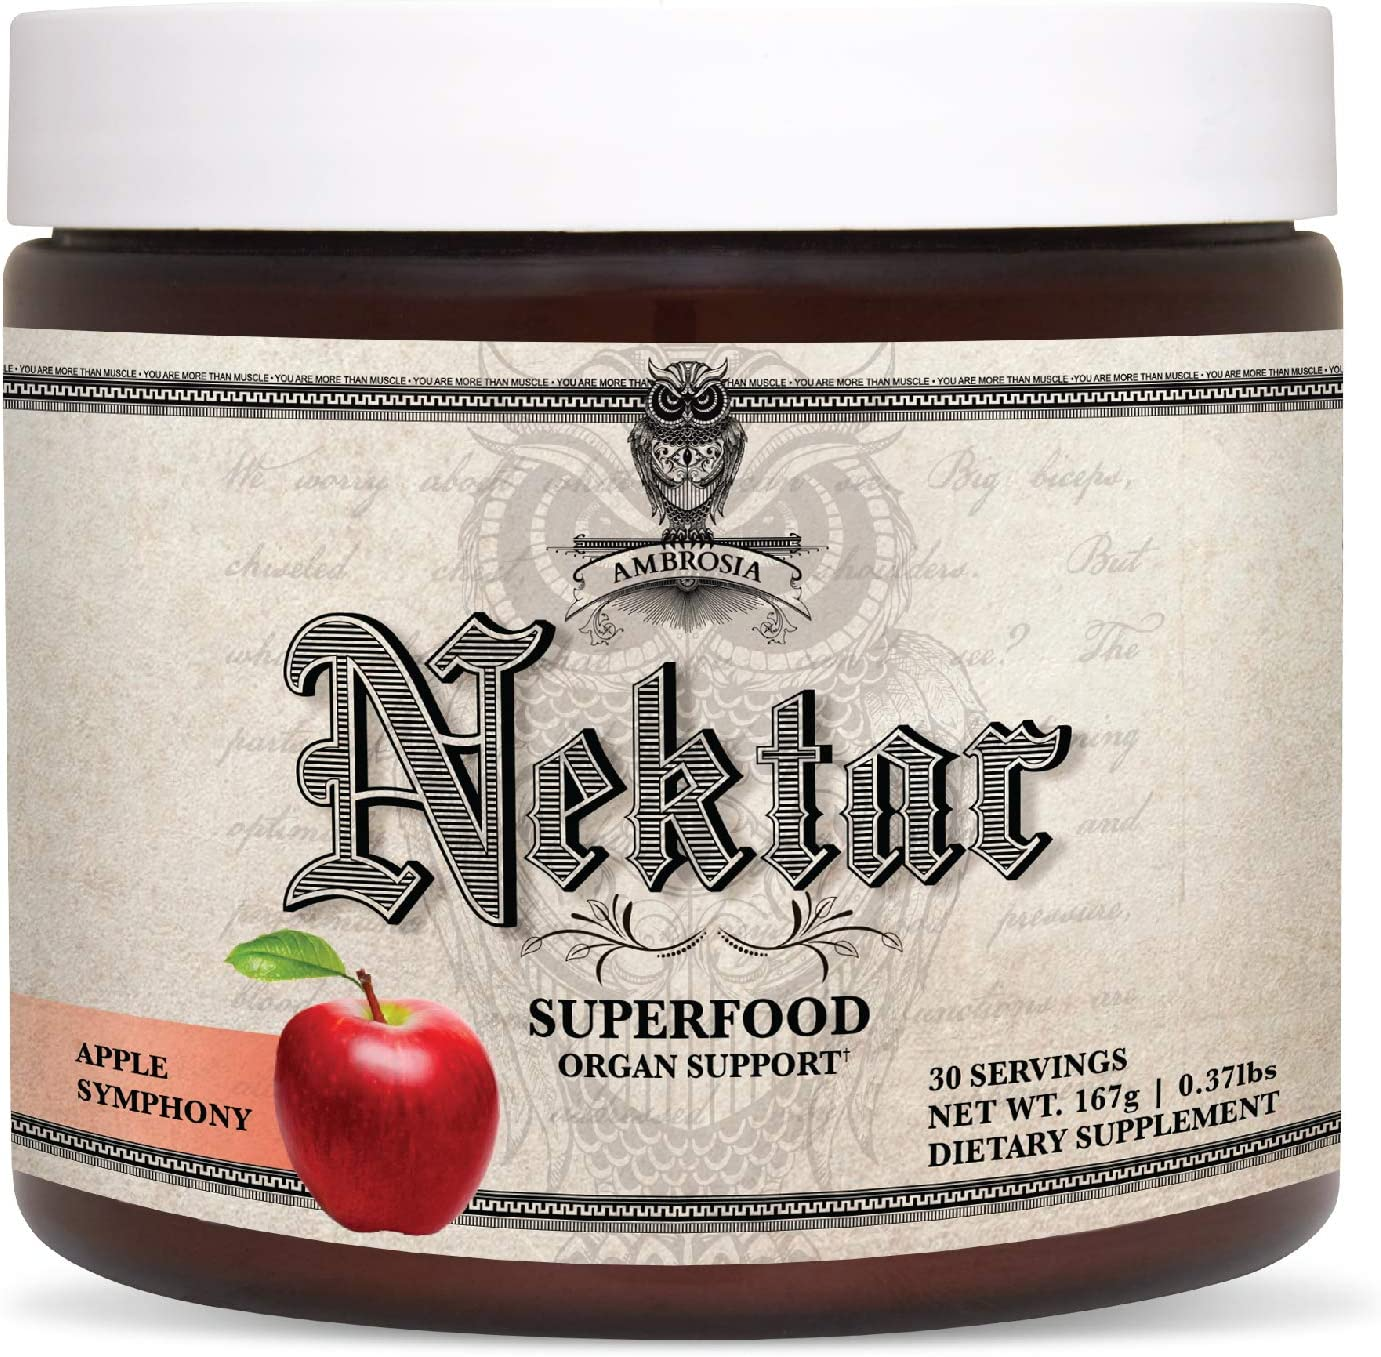 Ambrosia Nektar - Superfood Powder | Complete Health Supplement | Organ Support - Liver, Heart, Kidney Health | 30 Servings | Apple Symphony